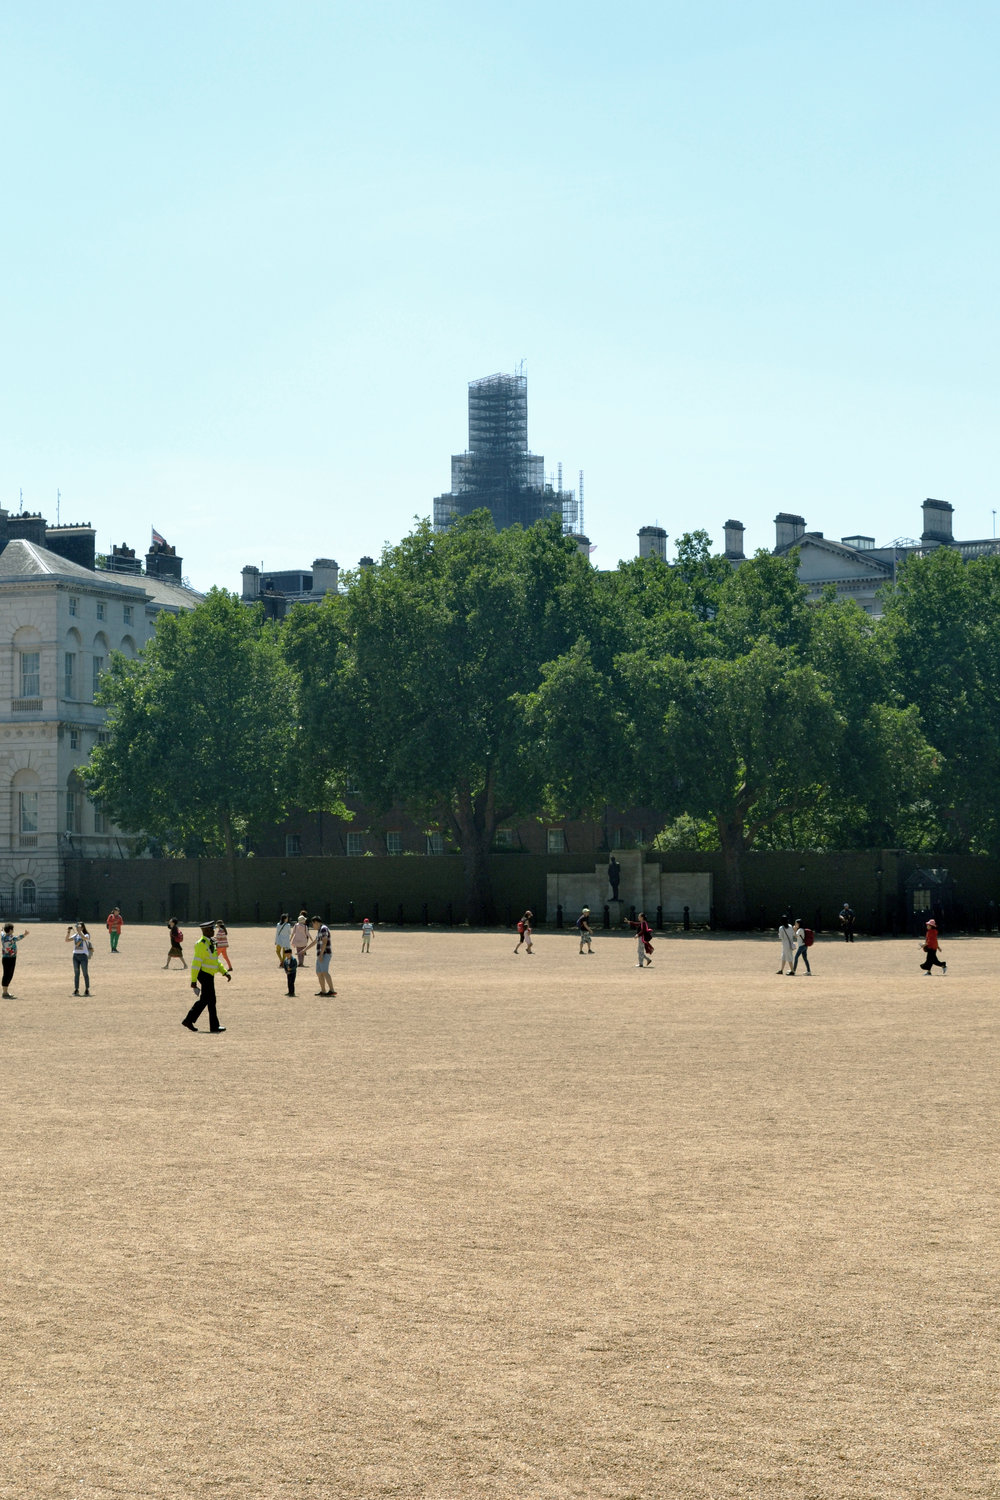 Elizabeth Tower scaffolding visible from Horse Guards Parade